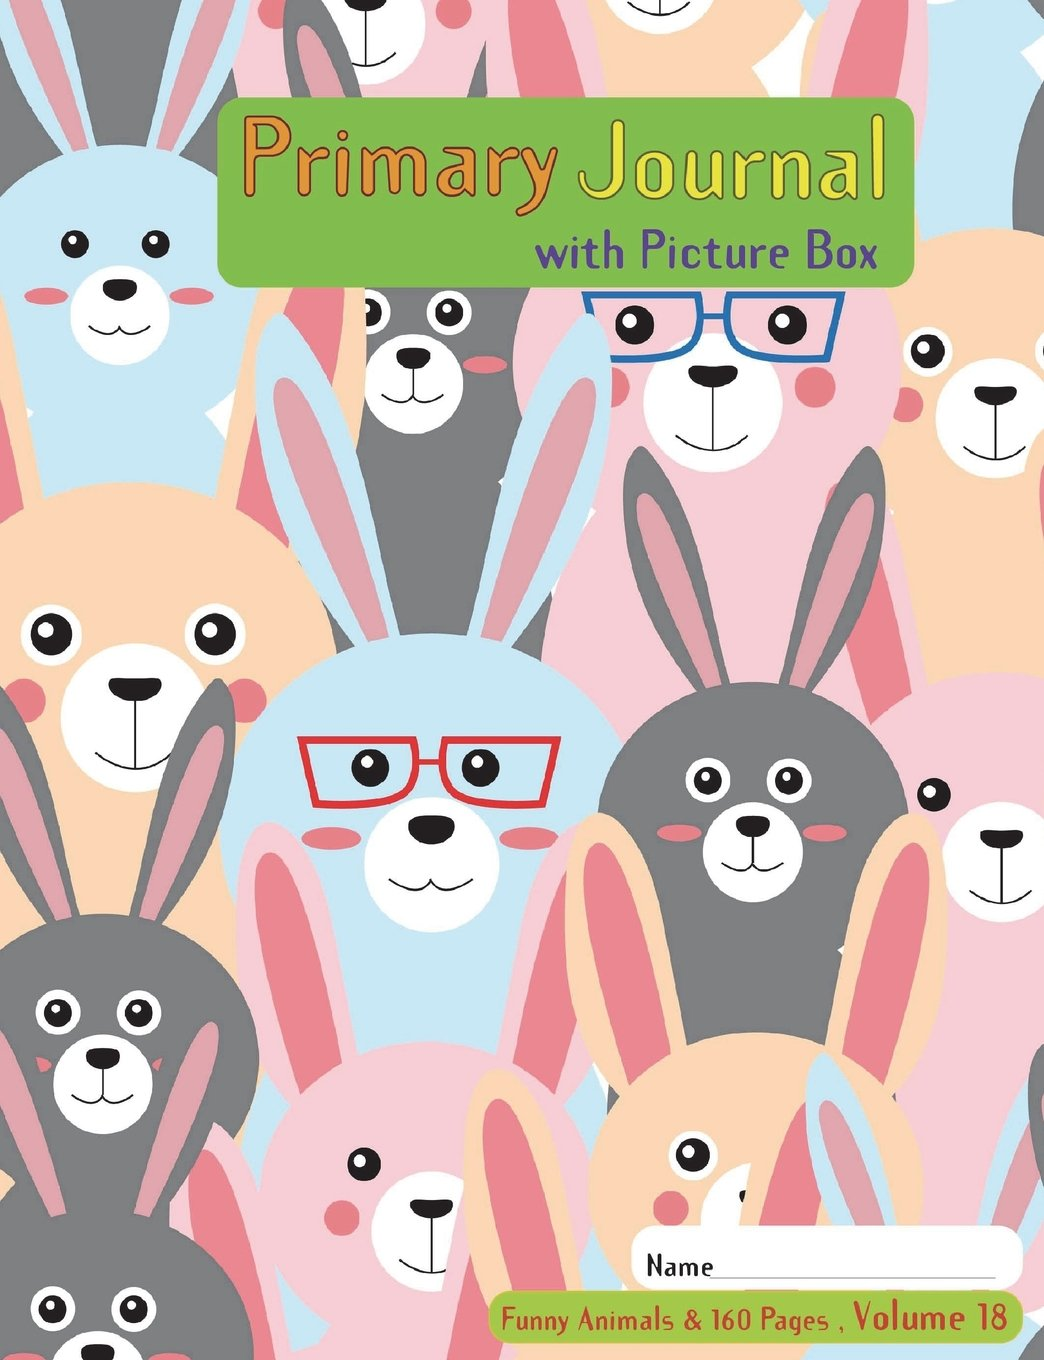 Read Online Primary Journal with picture box: Half page ruled, Grades K-2, Picture story block, (Volume 18) of funny animals &160 pages series; Improve creative ... 7.44 x 9.69 Inches ,160 pages (80 Sheets) pdf epub